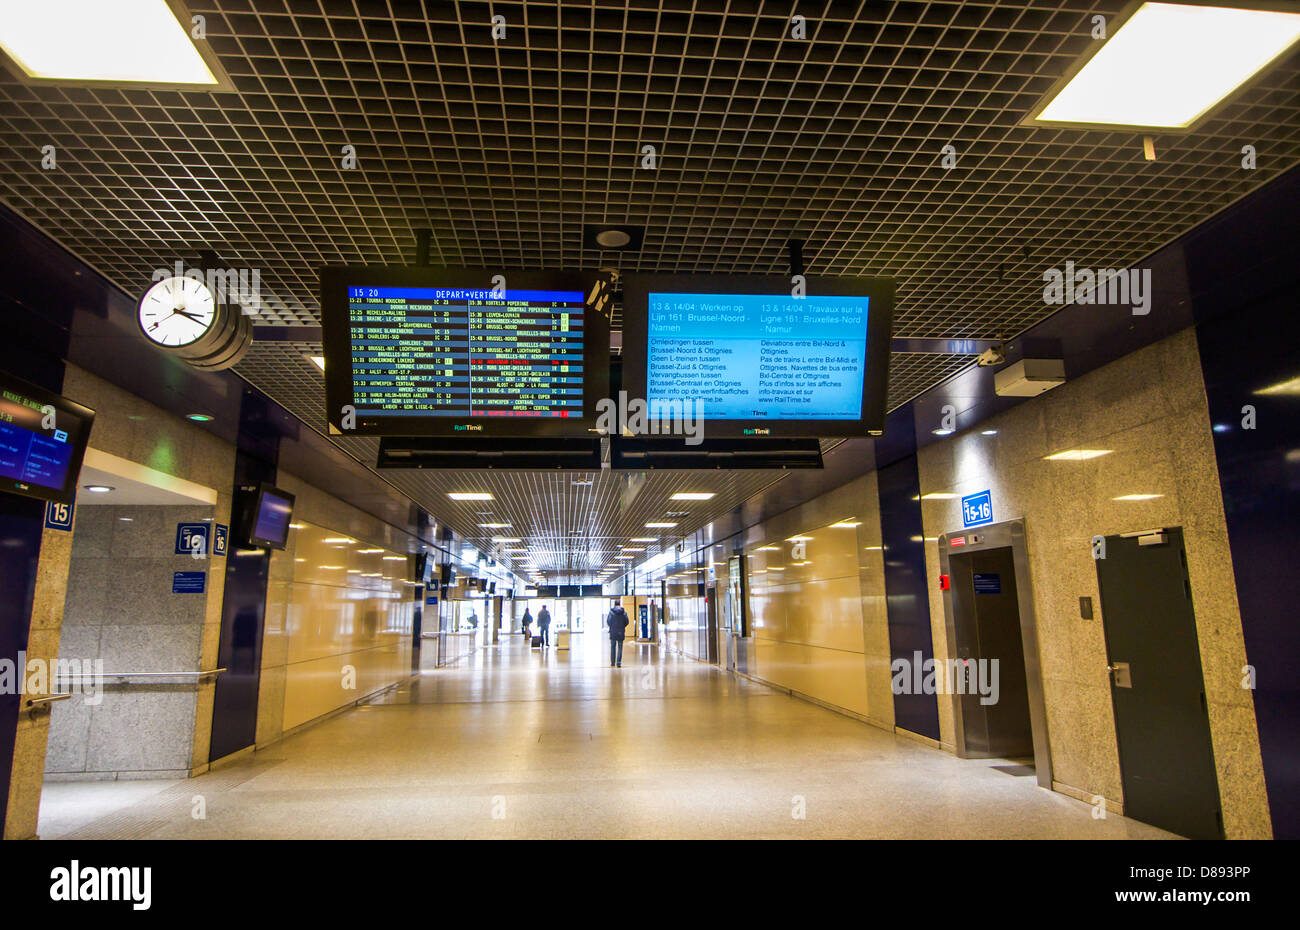 Electronic departure and arrival boards overhead in a long passageway at the Brussels Midi train station in Belgium. - Stock Image